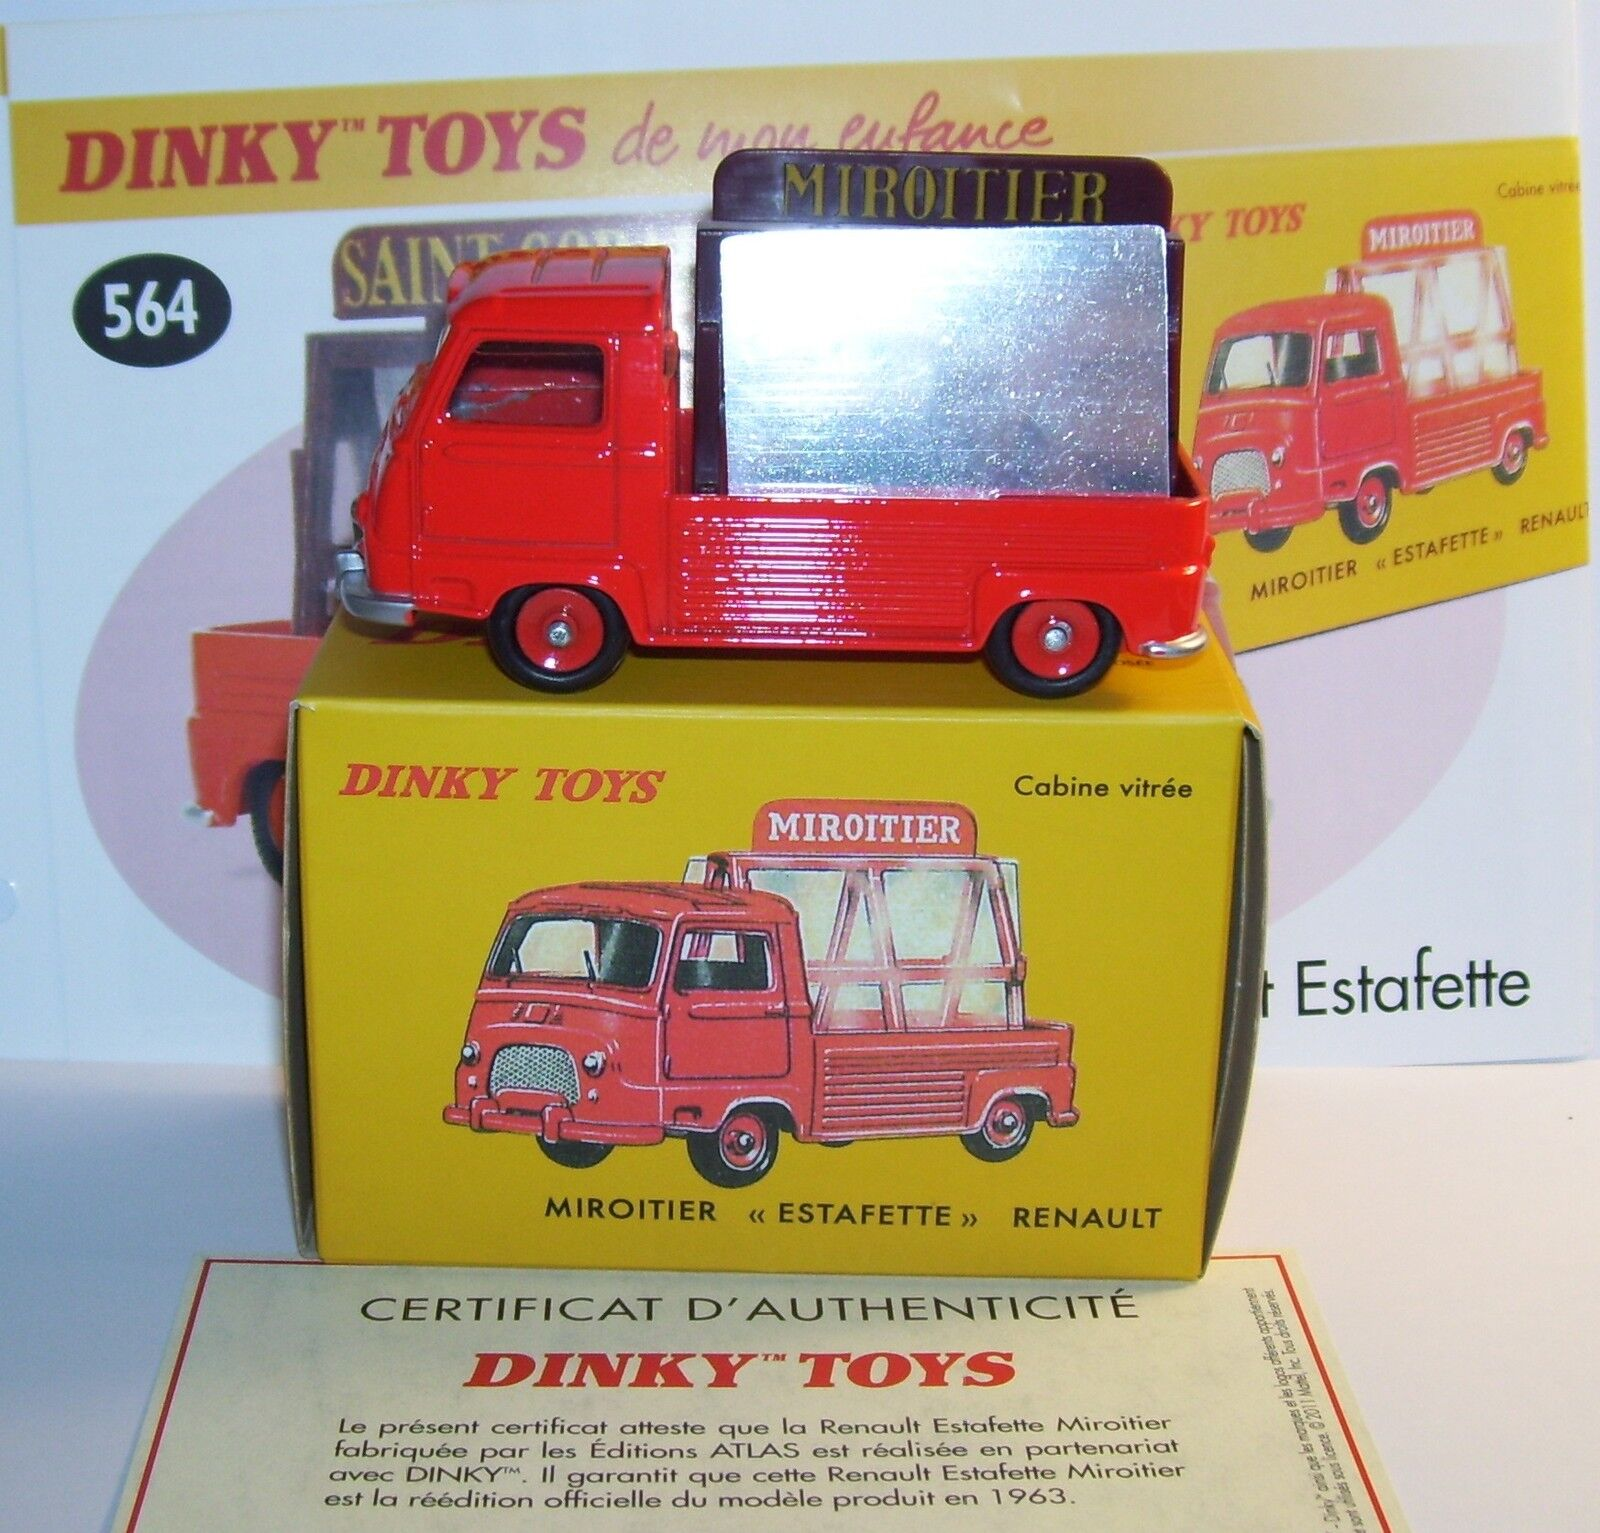 DINKY TOYS ATLAS PICK-UP RENAULT ESTAFETTE MIROITIER rosso 1 43 REF 564 EN BOX